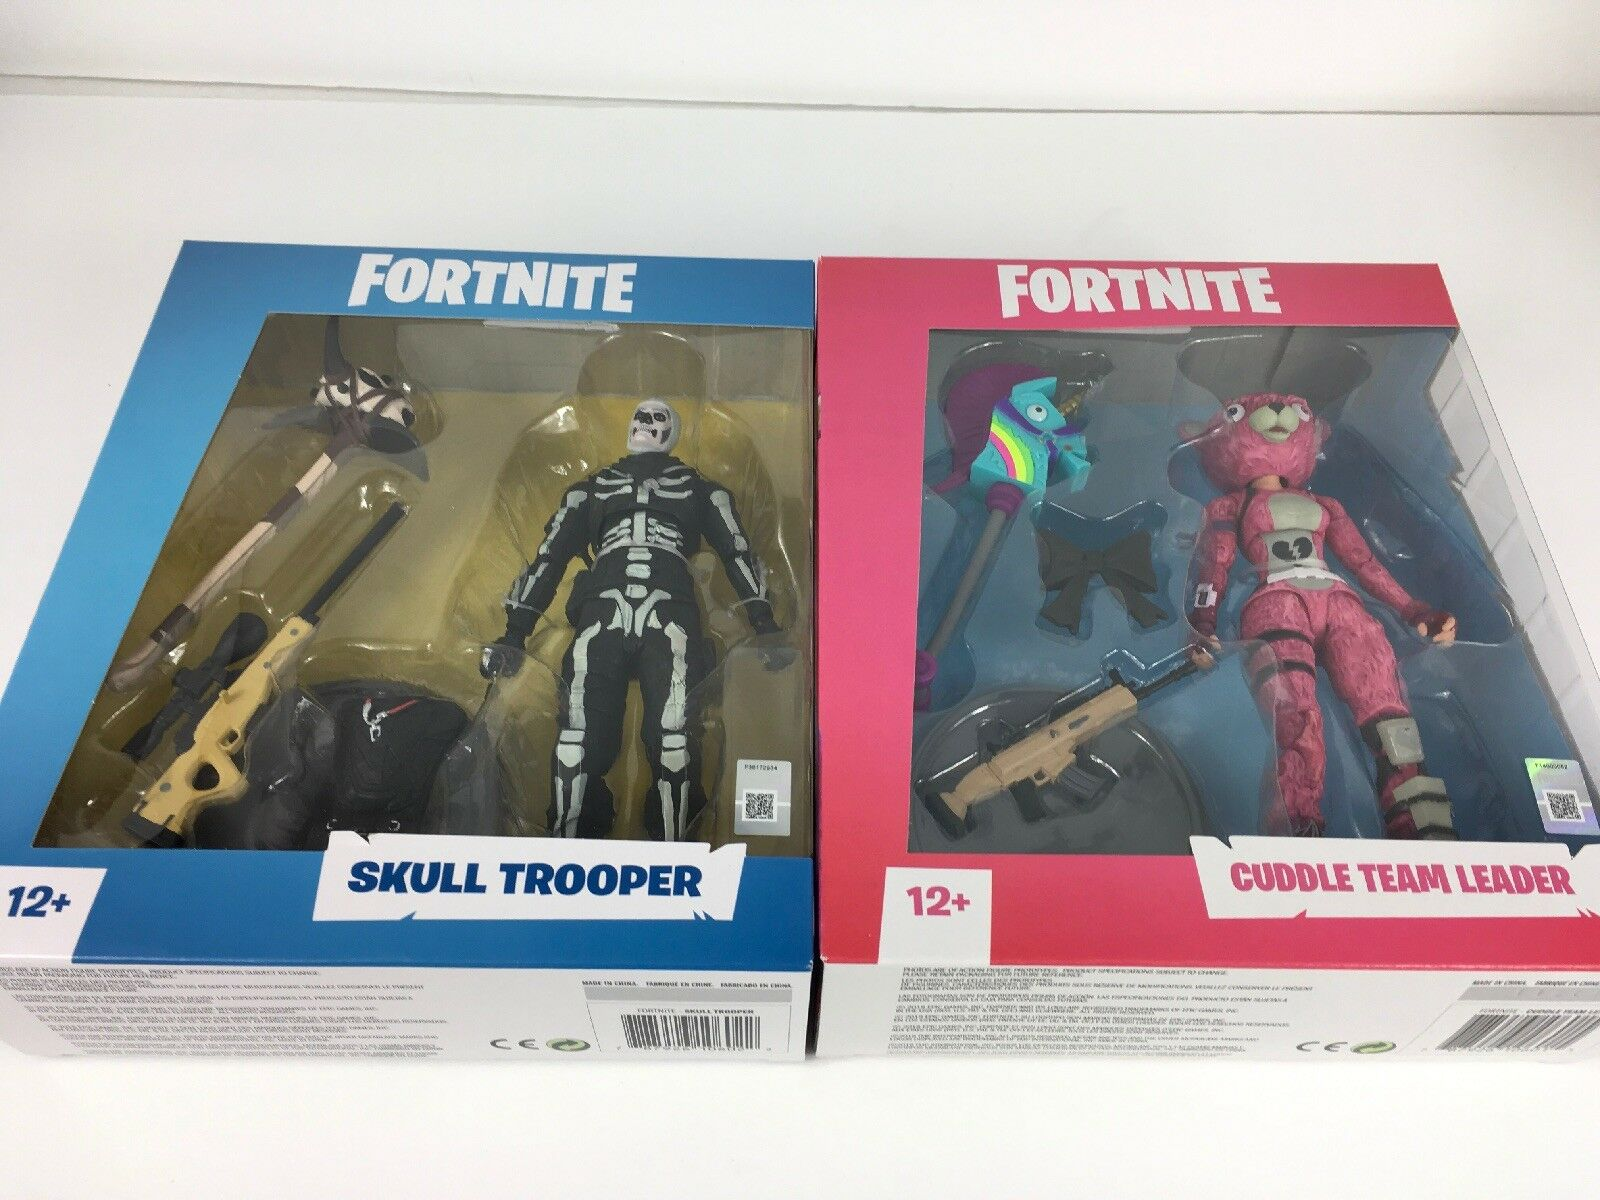 "Fortnite Skull Trooper And Cuddle Team Leader 7"" Acción Figura by McFarlane Juguetes"